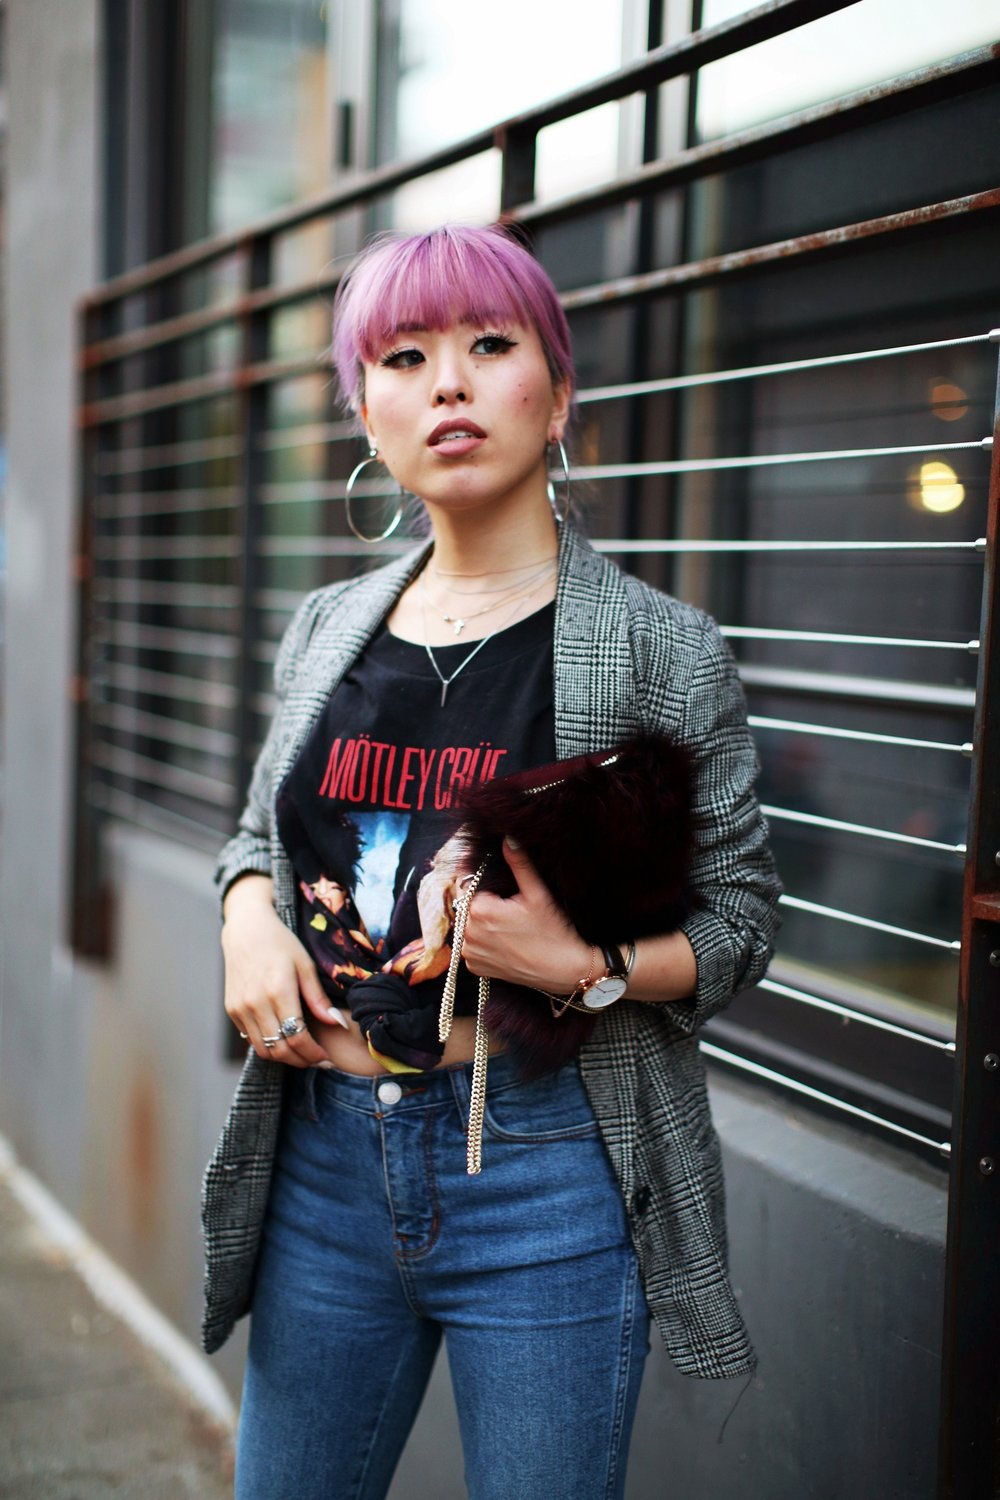 Nordstrom Plaid Blazer_Vintage Rockband Tee_Free People High Waisted Jeans_Daniel Wellington Watch_ASOS Black Mules_DVF Fur Bag_Swarovski Remix Collection Smiling Face_Pink Hair_Aika's Love Closet_Seattle Fashion Style Blogger_Japanese 16